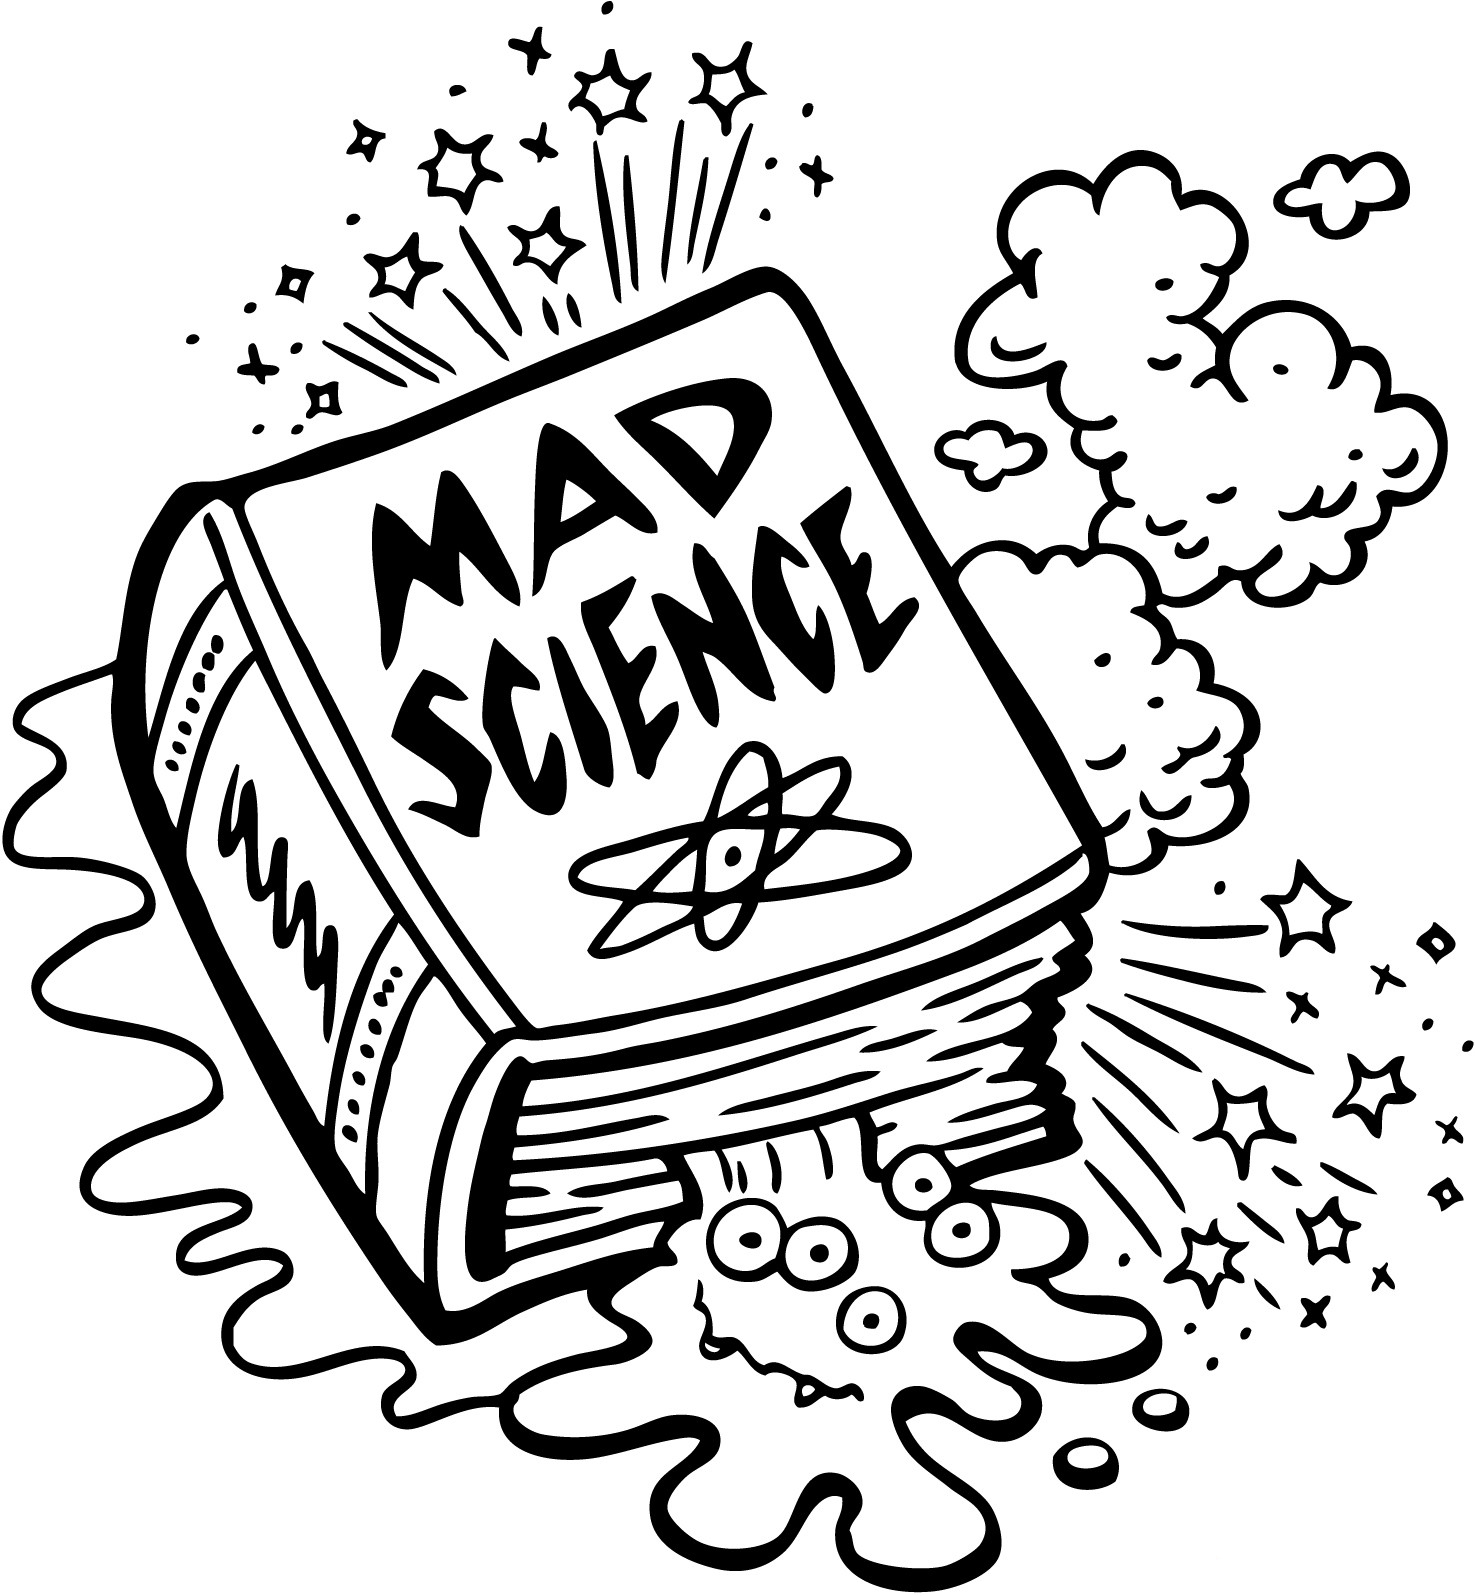 science coloring sheet science coloring pages sheet science coloring